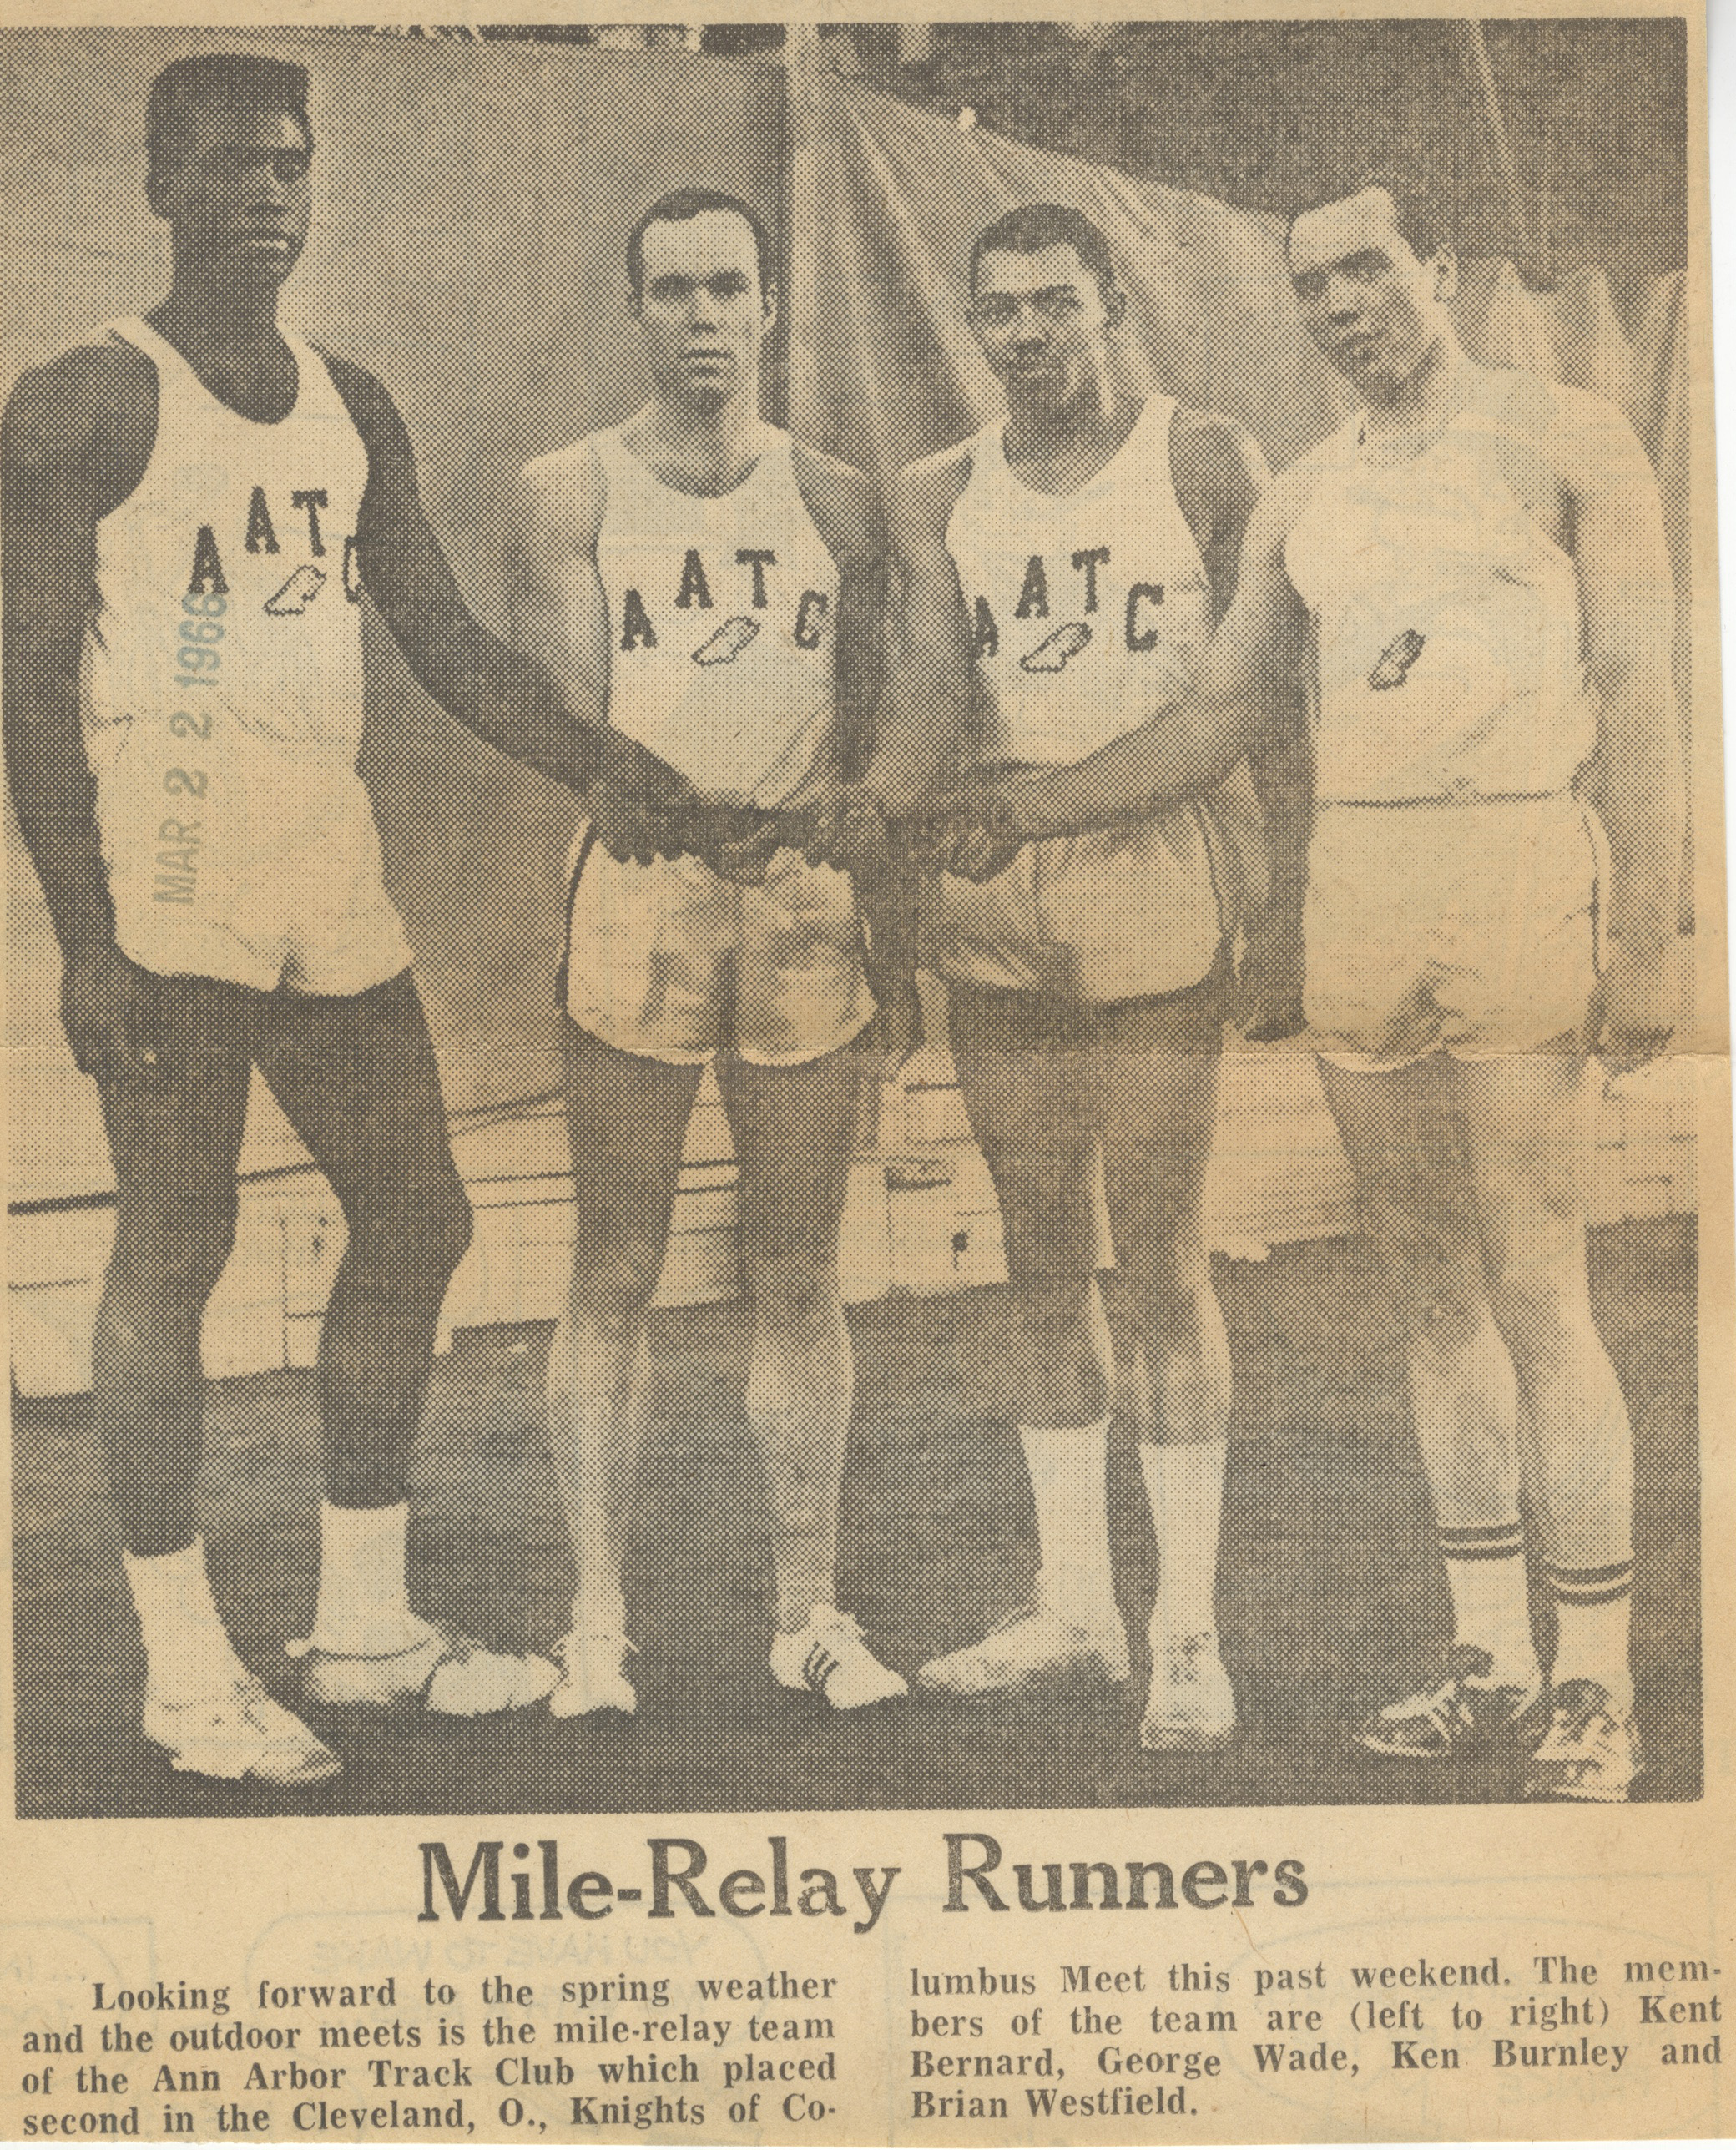 Mile-Relay Runners image